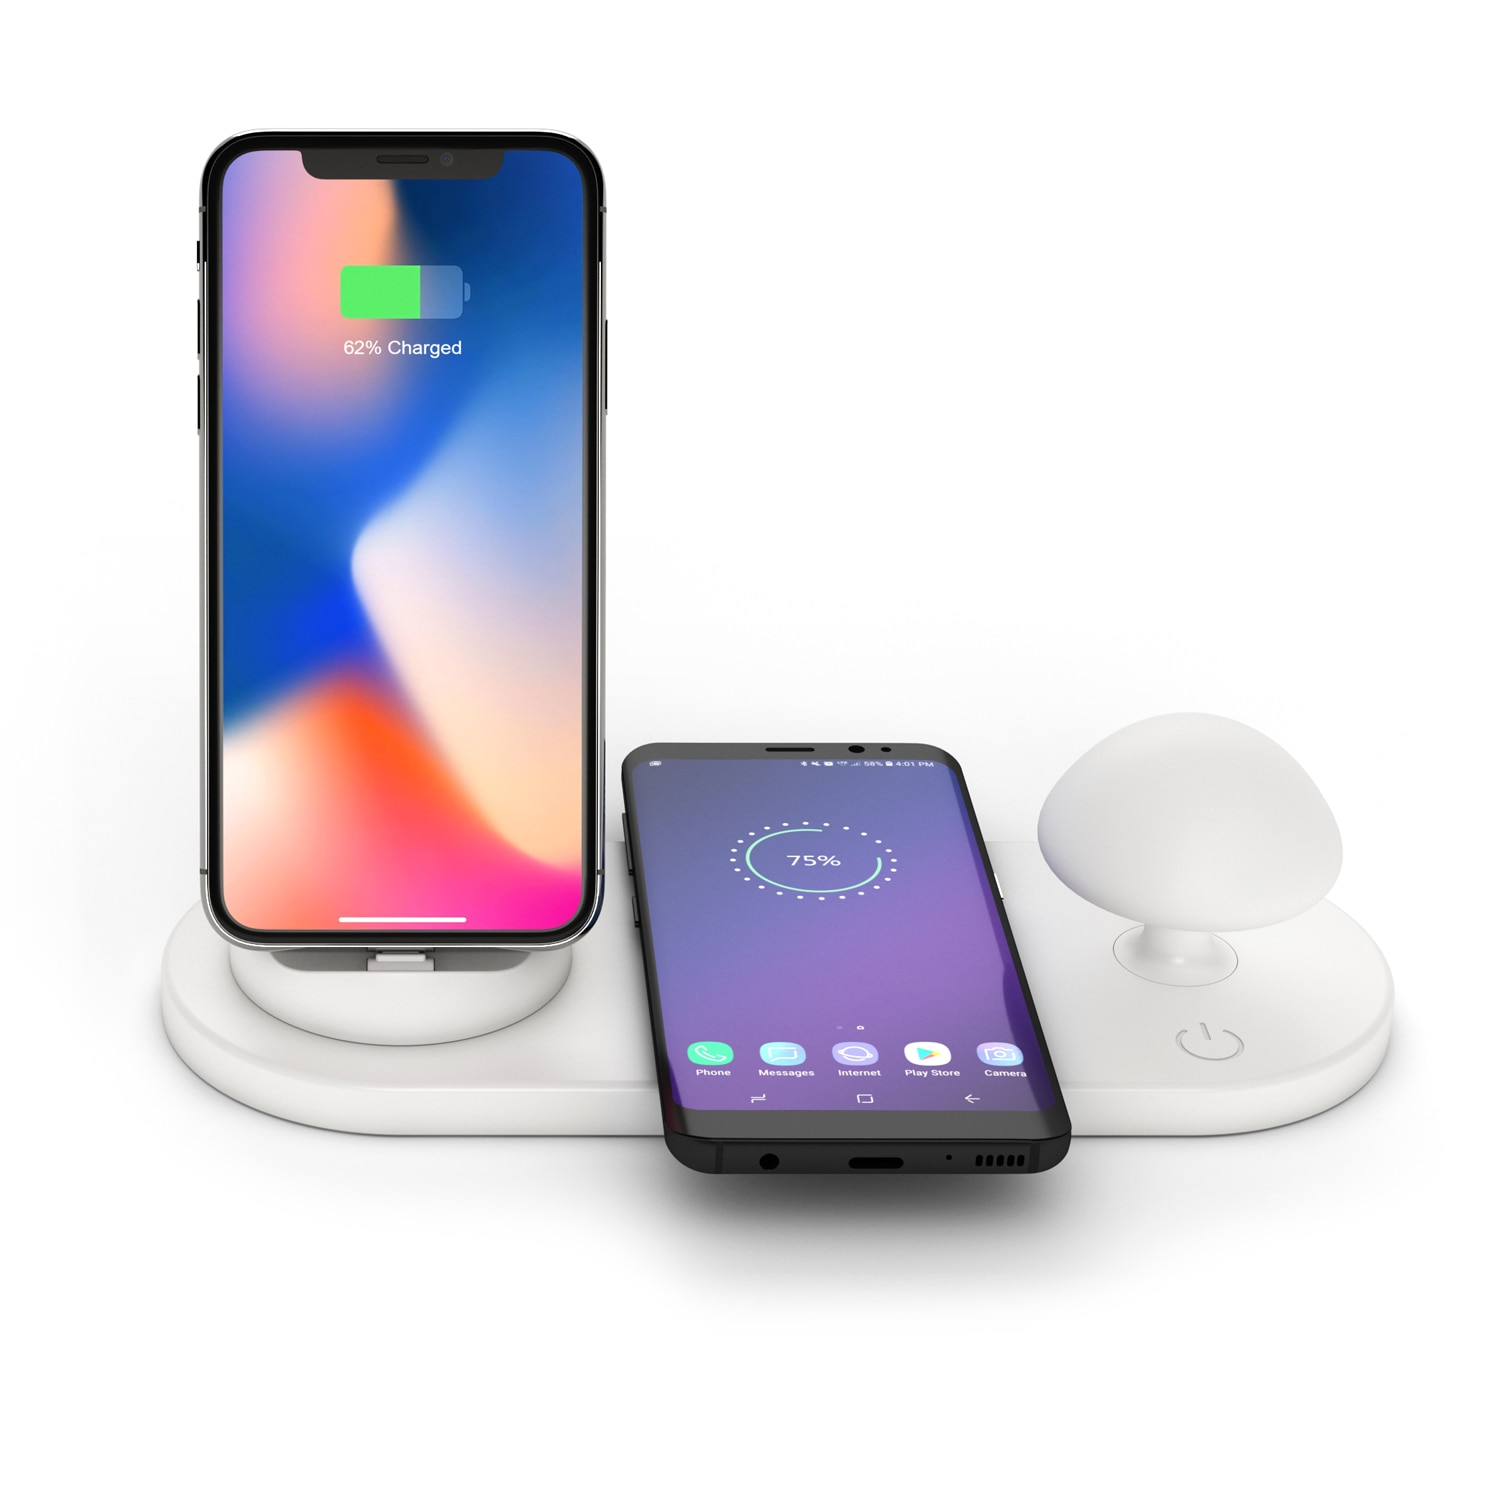 3 in 1 Mushroom lamp Wireless Charger for iPhone 12 Pro Max 11 Xs Max 8 Plus 10W Fast Charging Pad for huawei honor samsung s9+